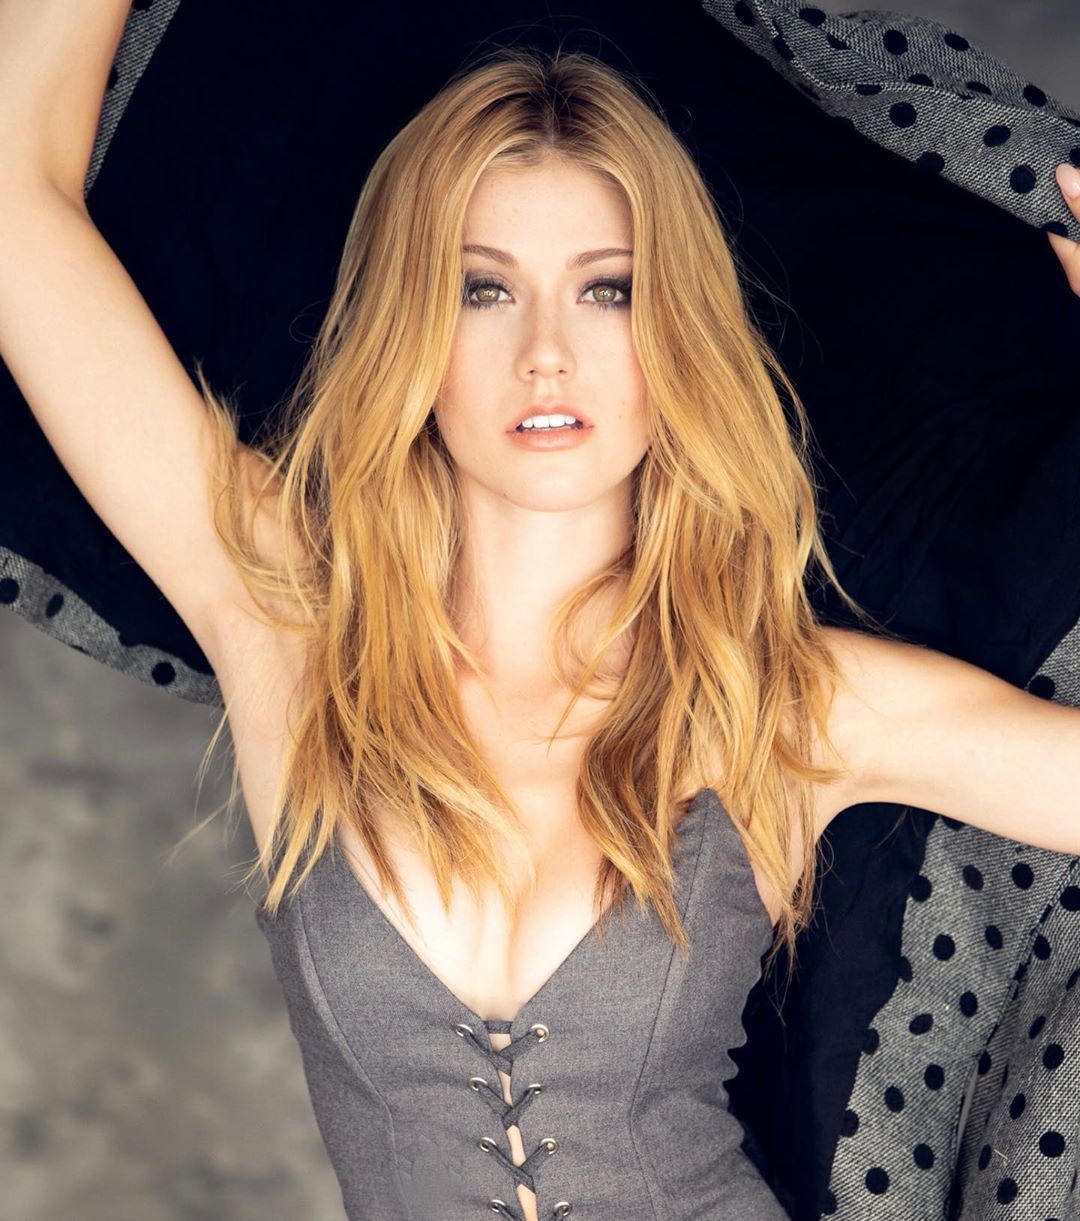 Katherine Mcnamara On Instagram I Polka Dots Katherine Mcnamara Beautiful Redhead Beautiful Blonde